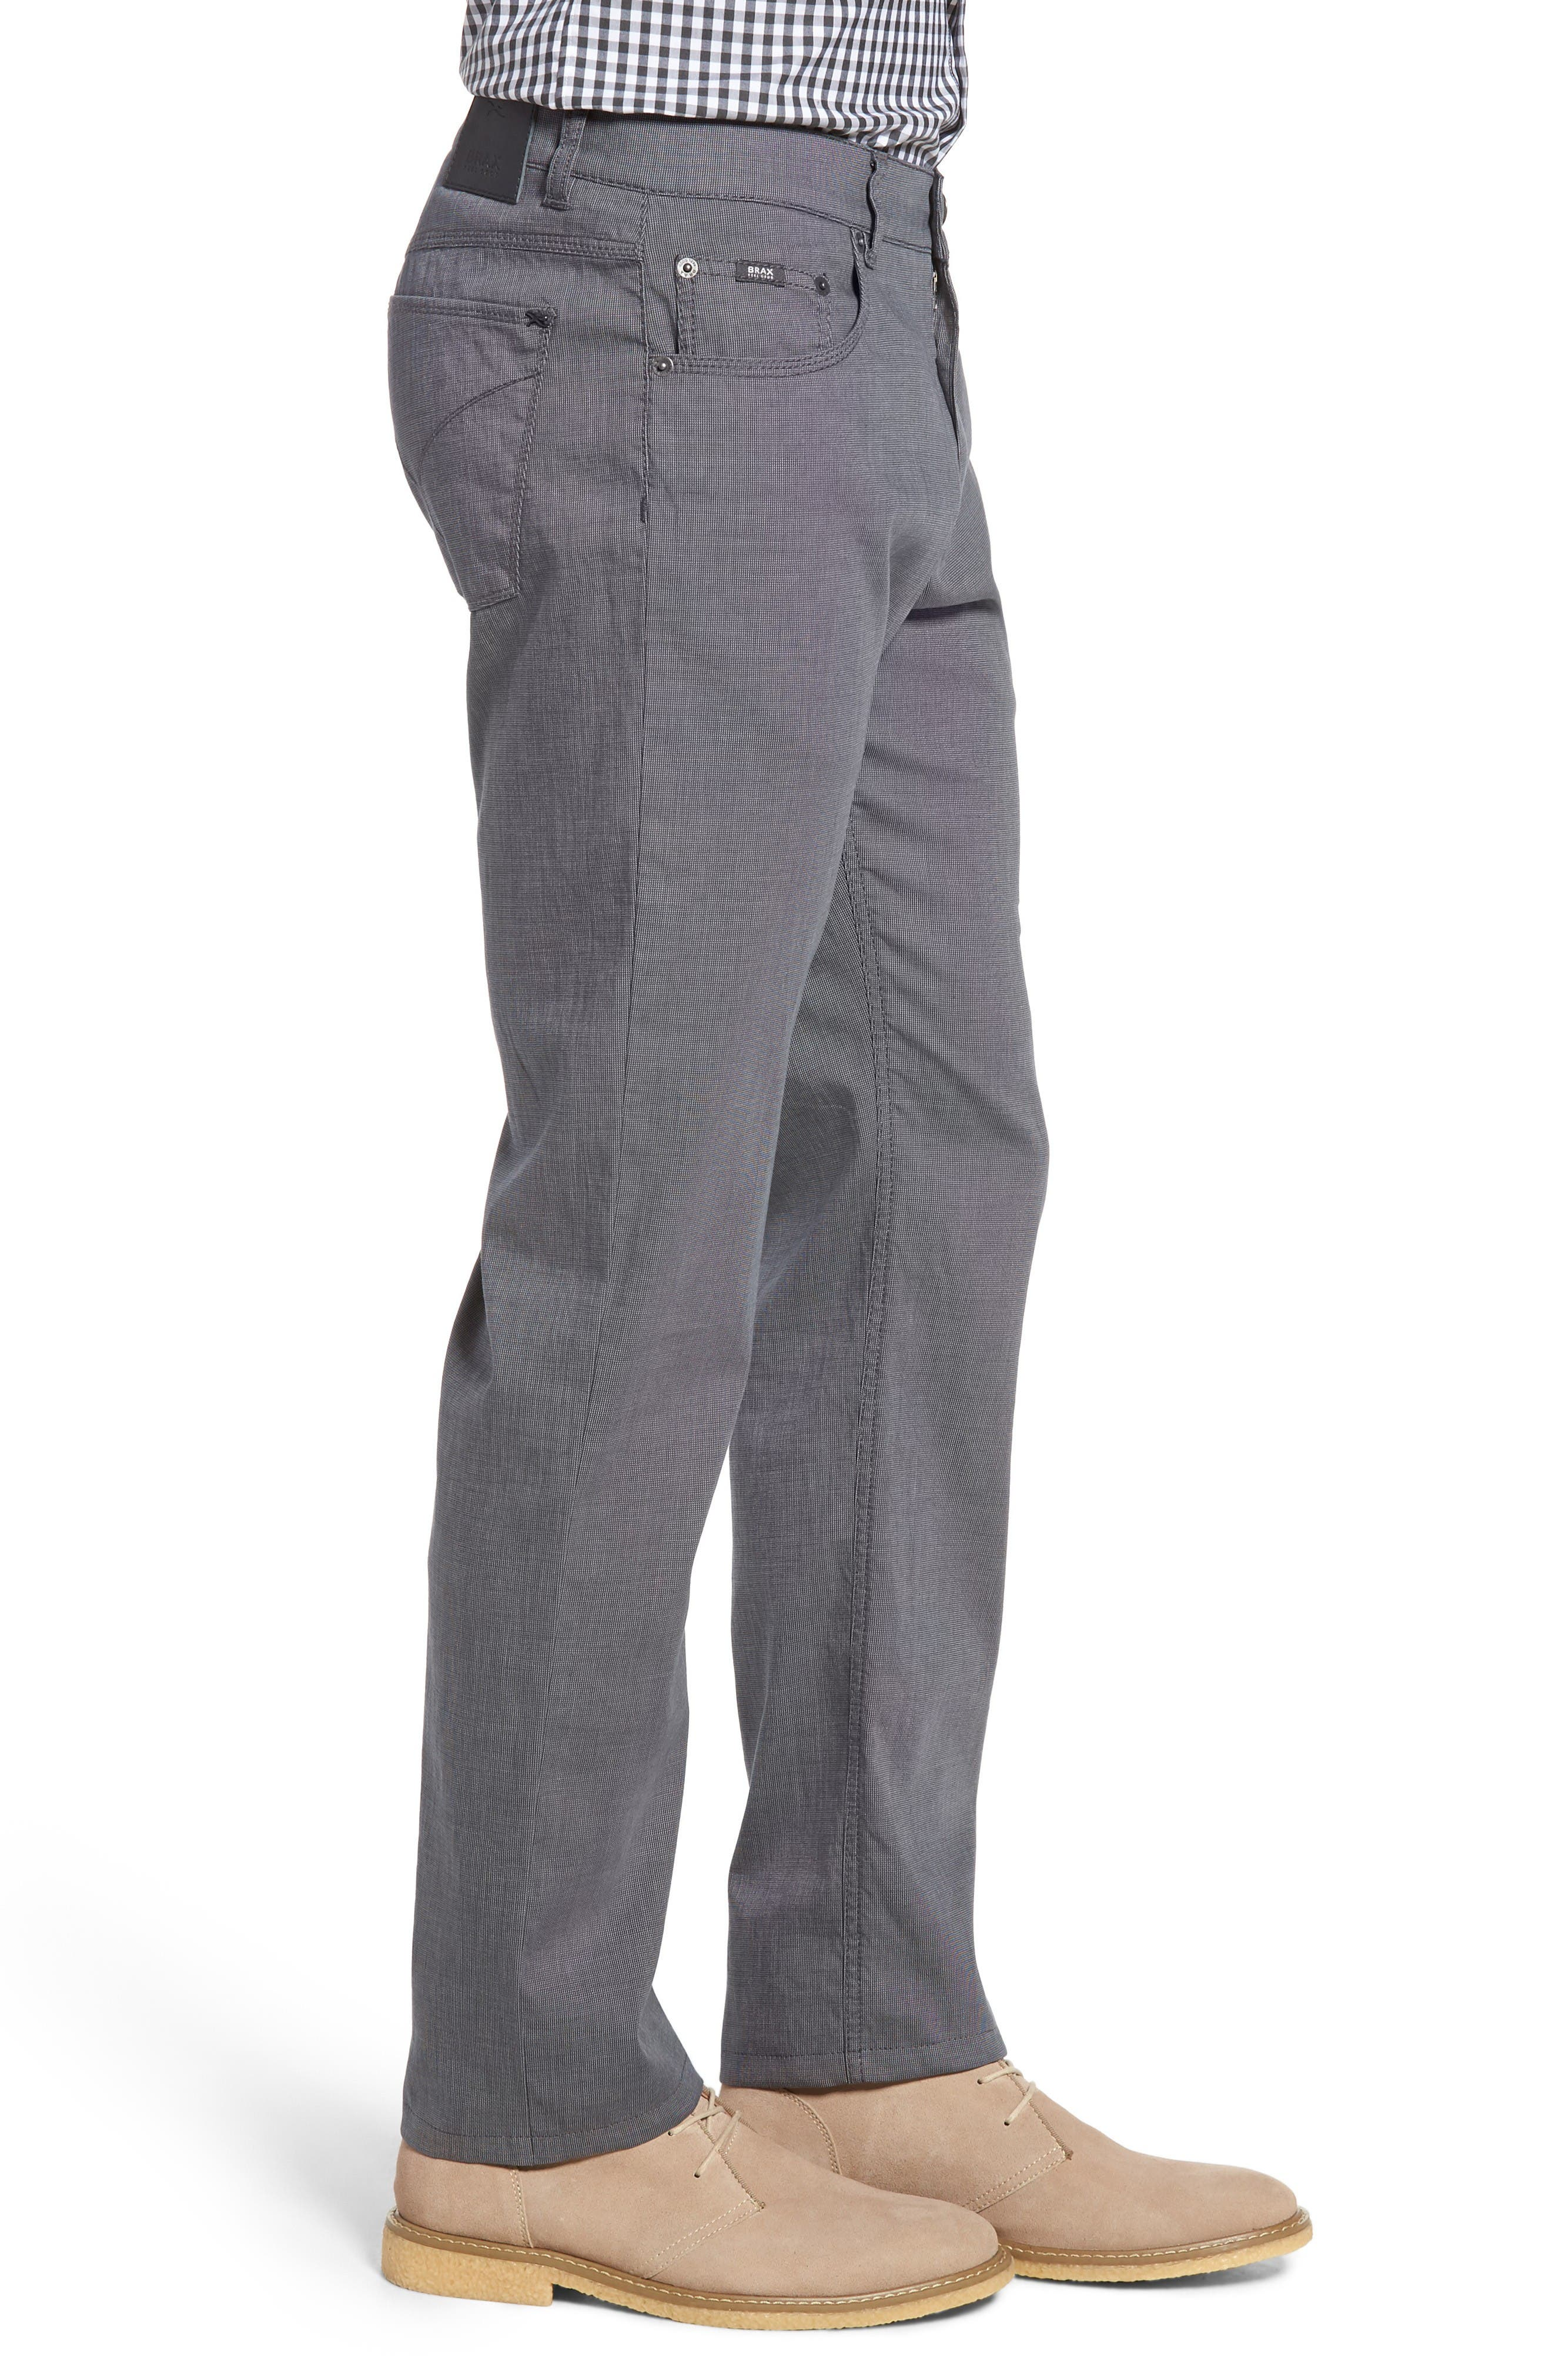 Sensation Stretch Trousers,                             Alternate thumbnail 3, color,                             Graphite